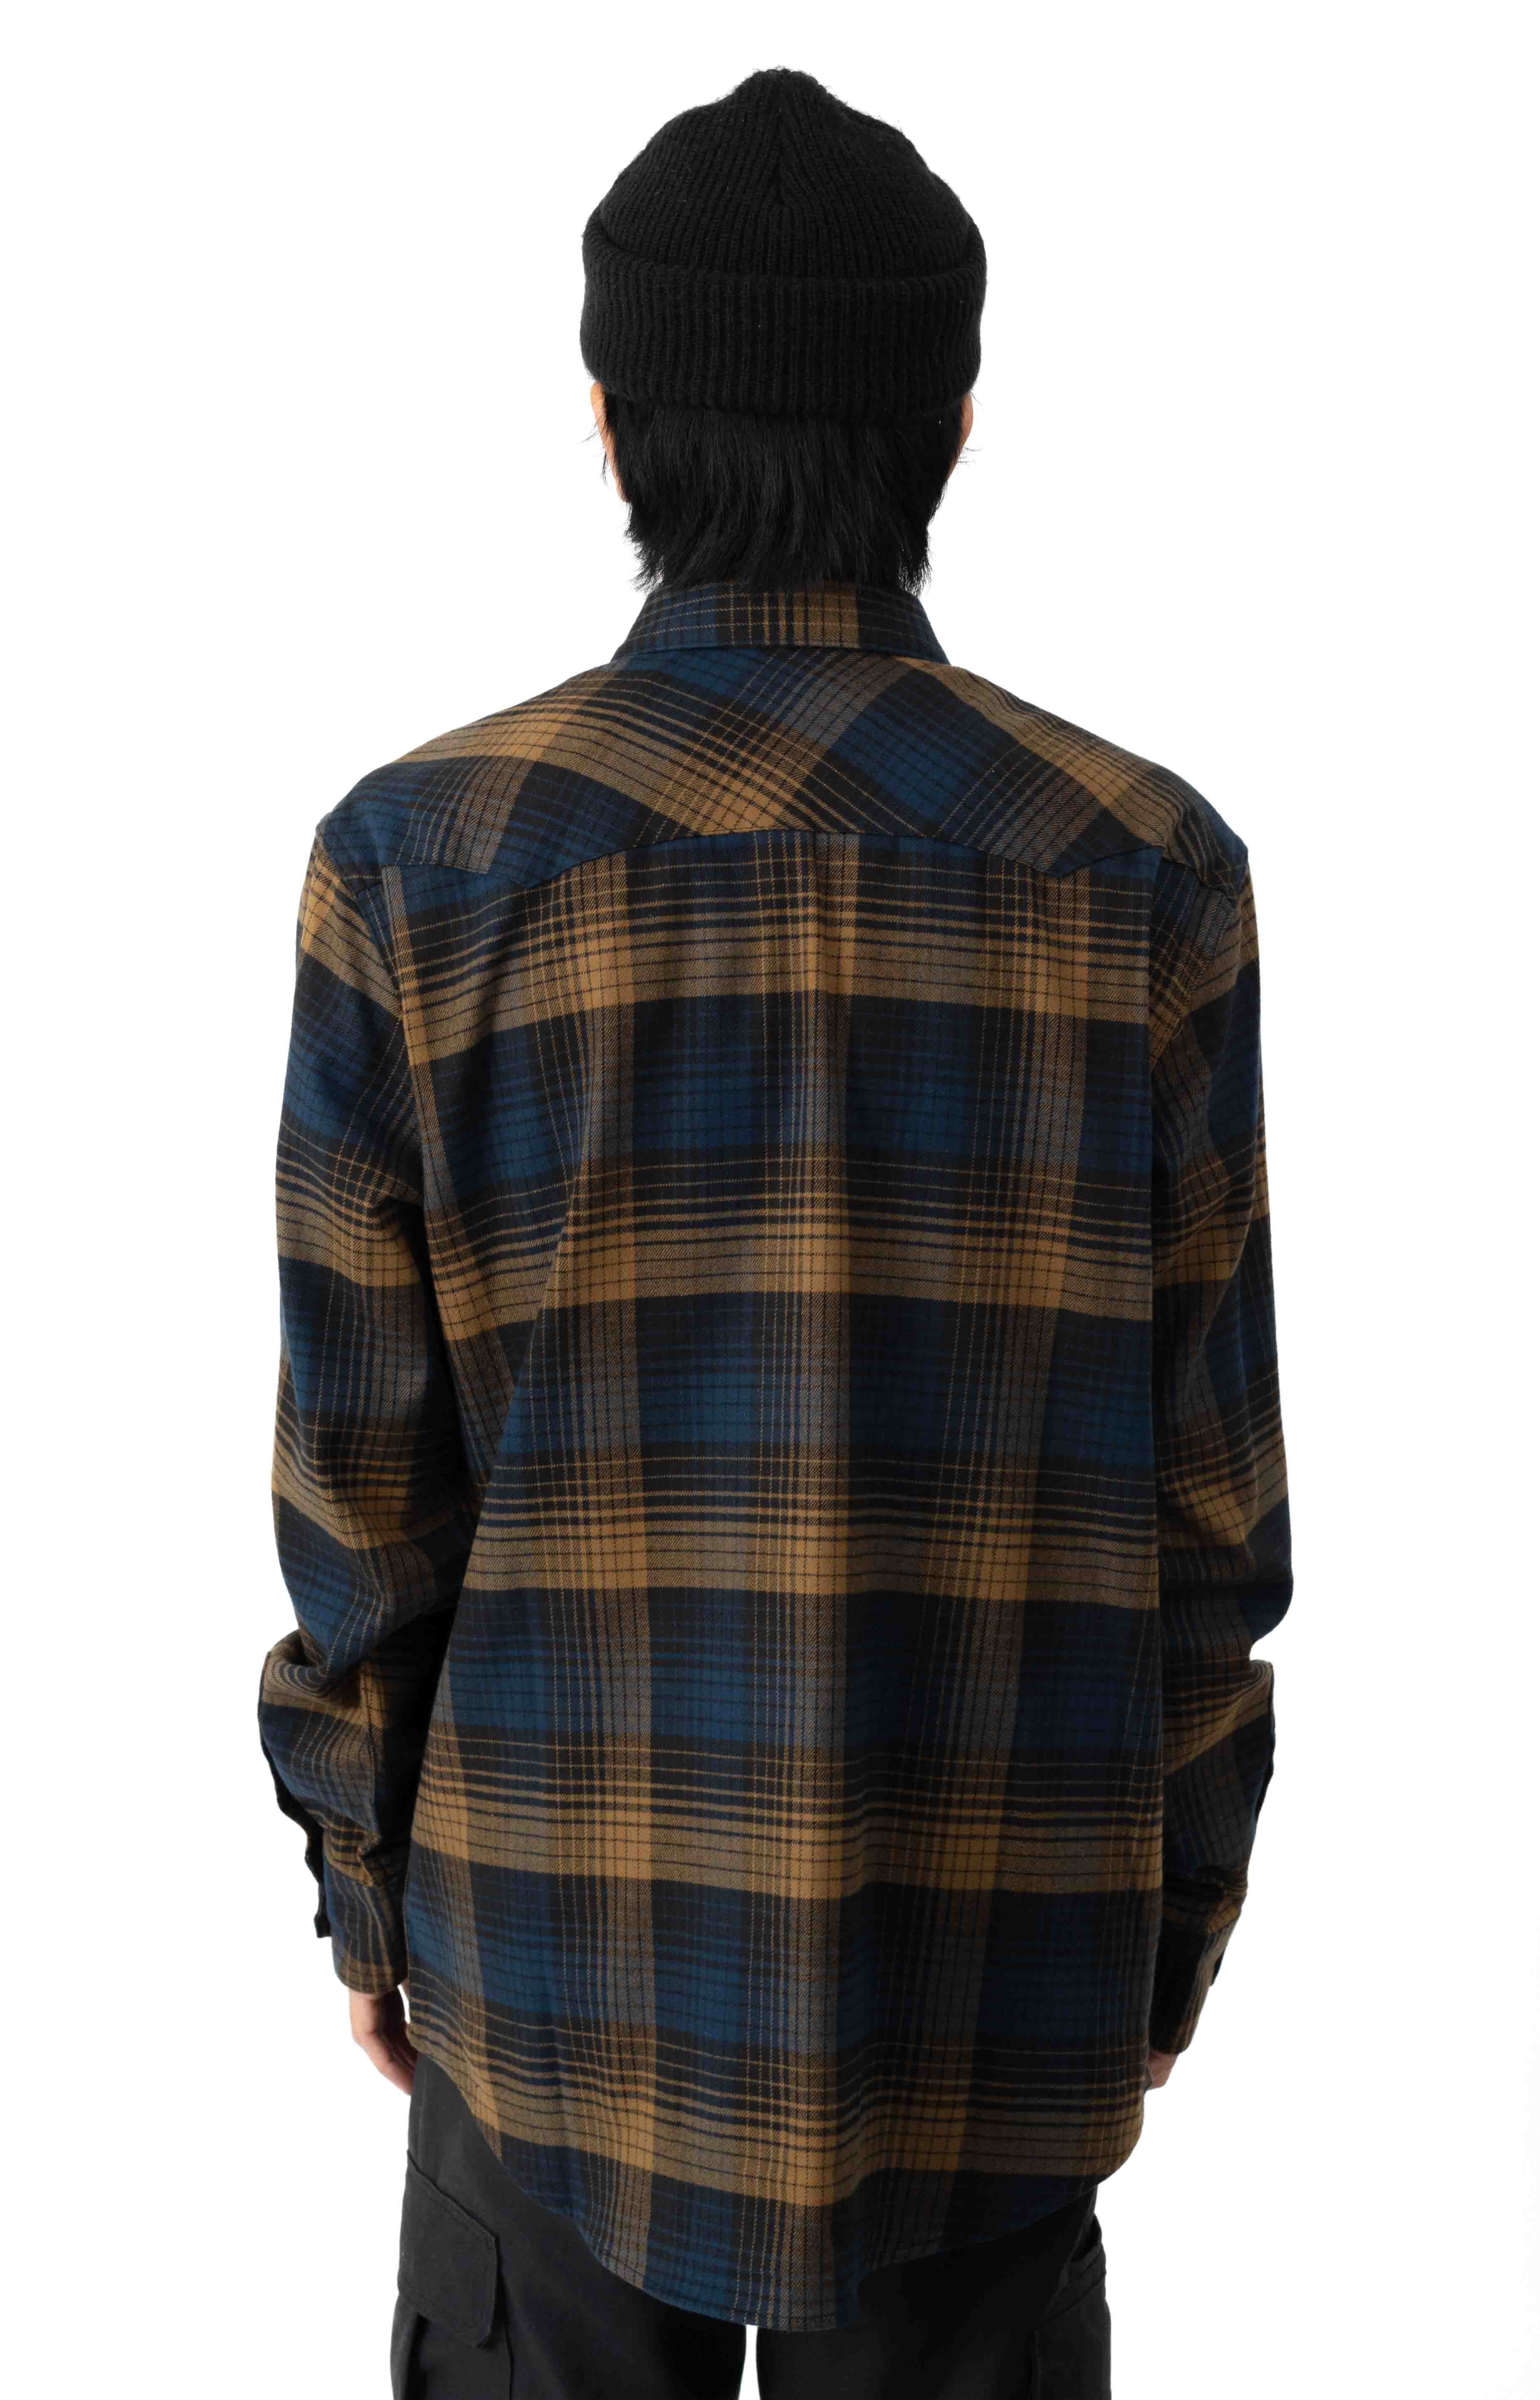 Western Flannel Button-Up Shirt - Plaid  3